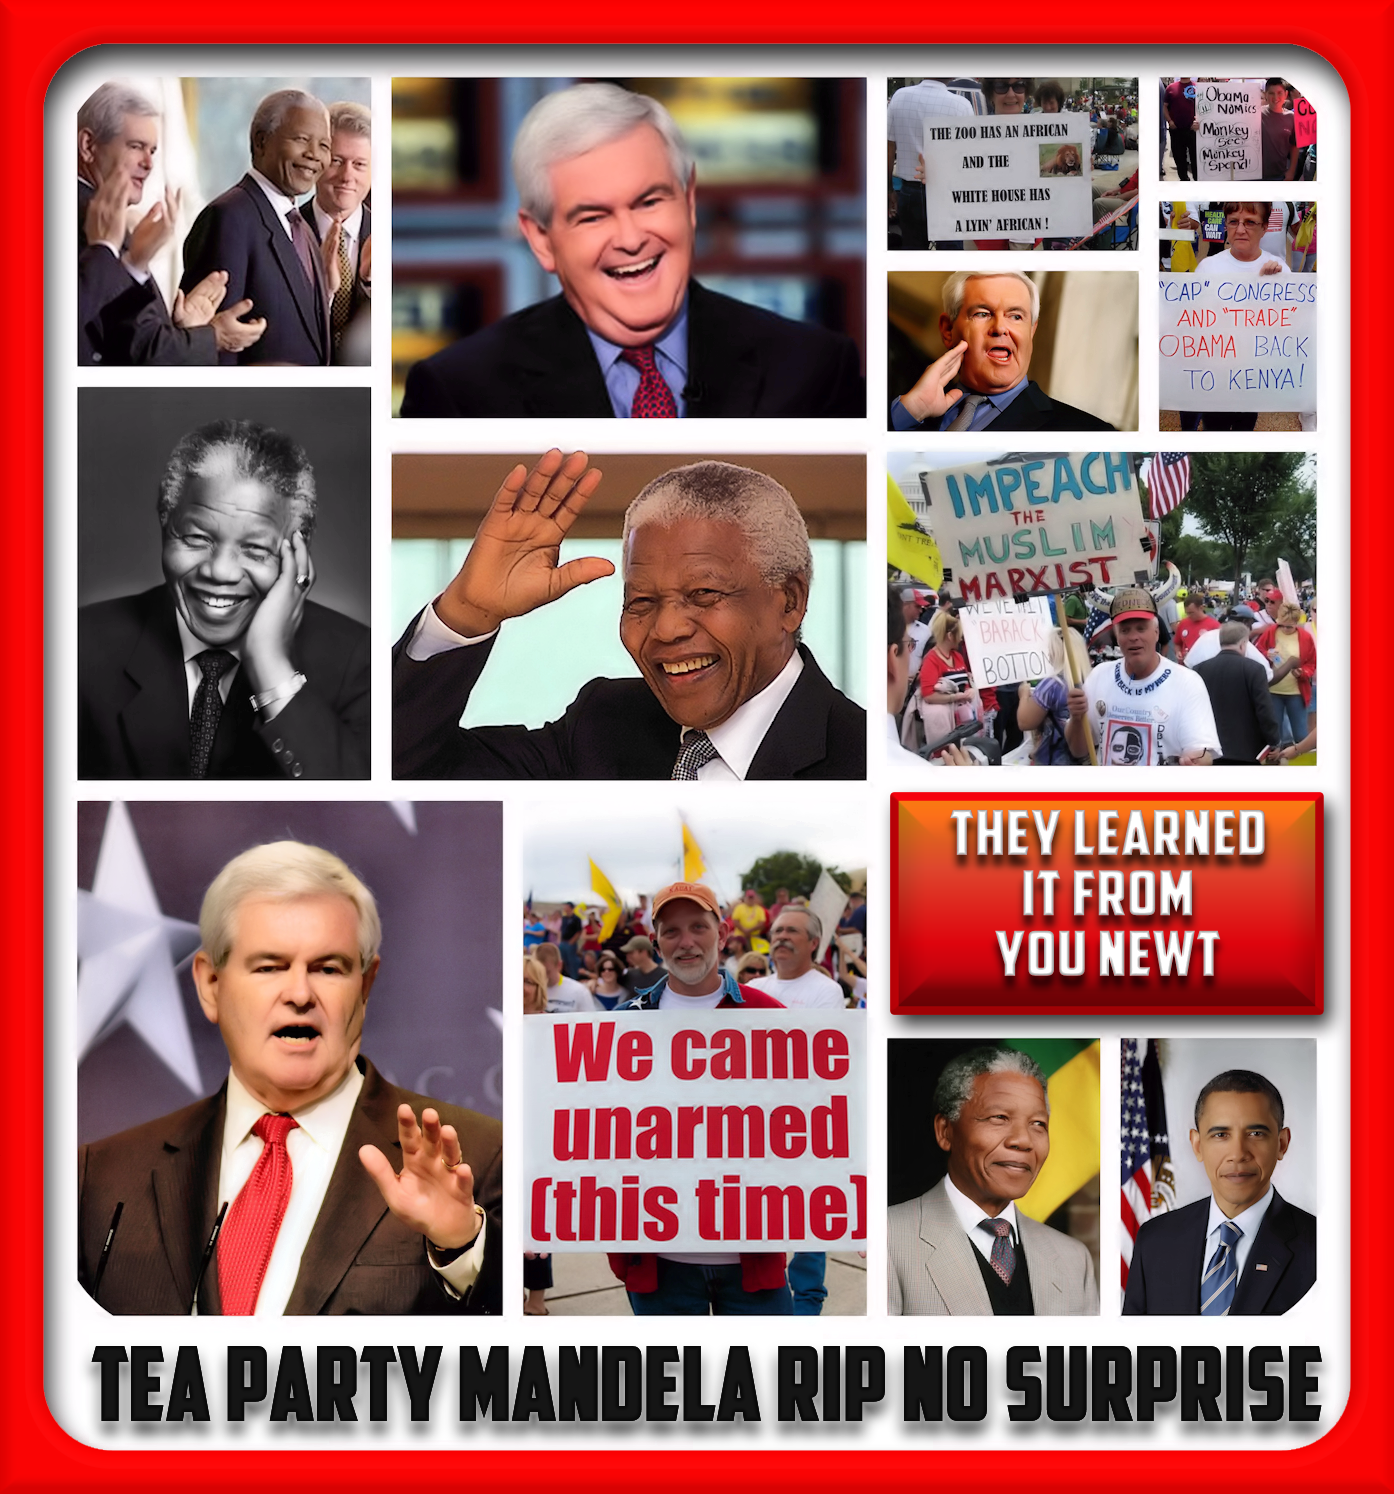 Tea Party Mandela Rip No Surprise